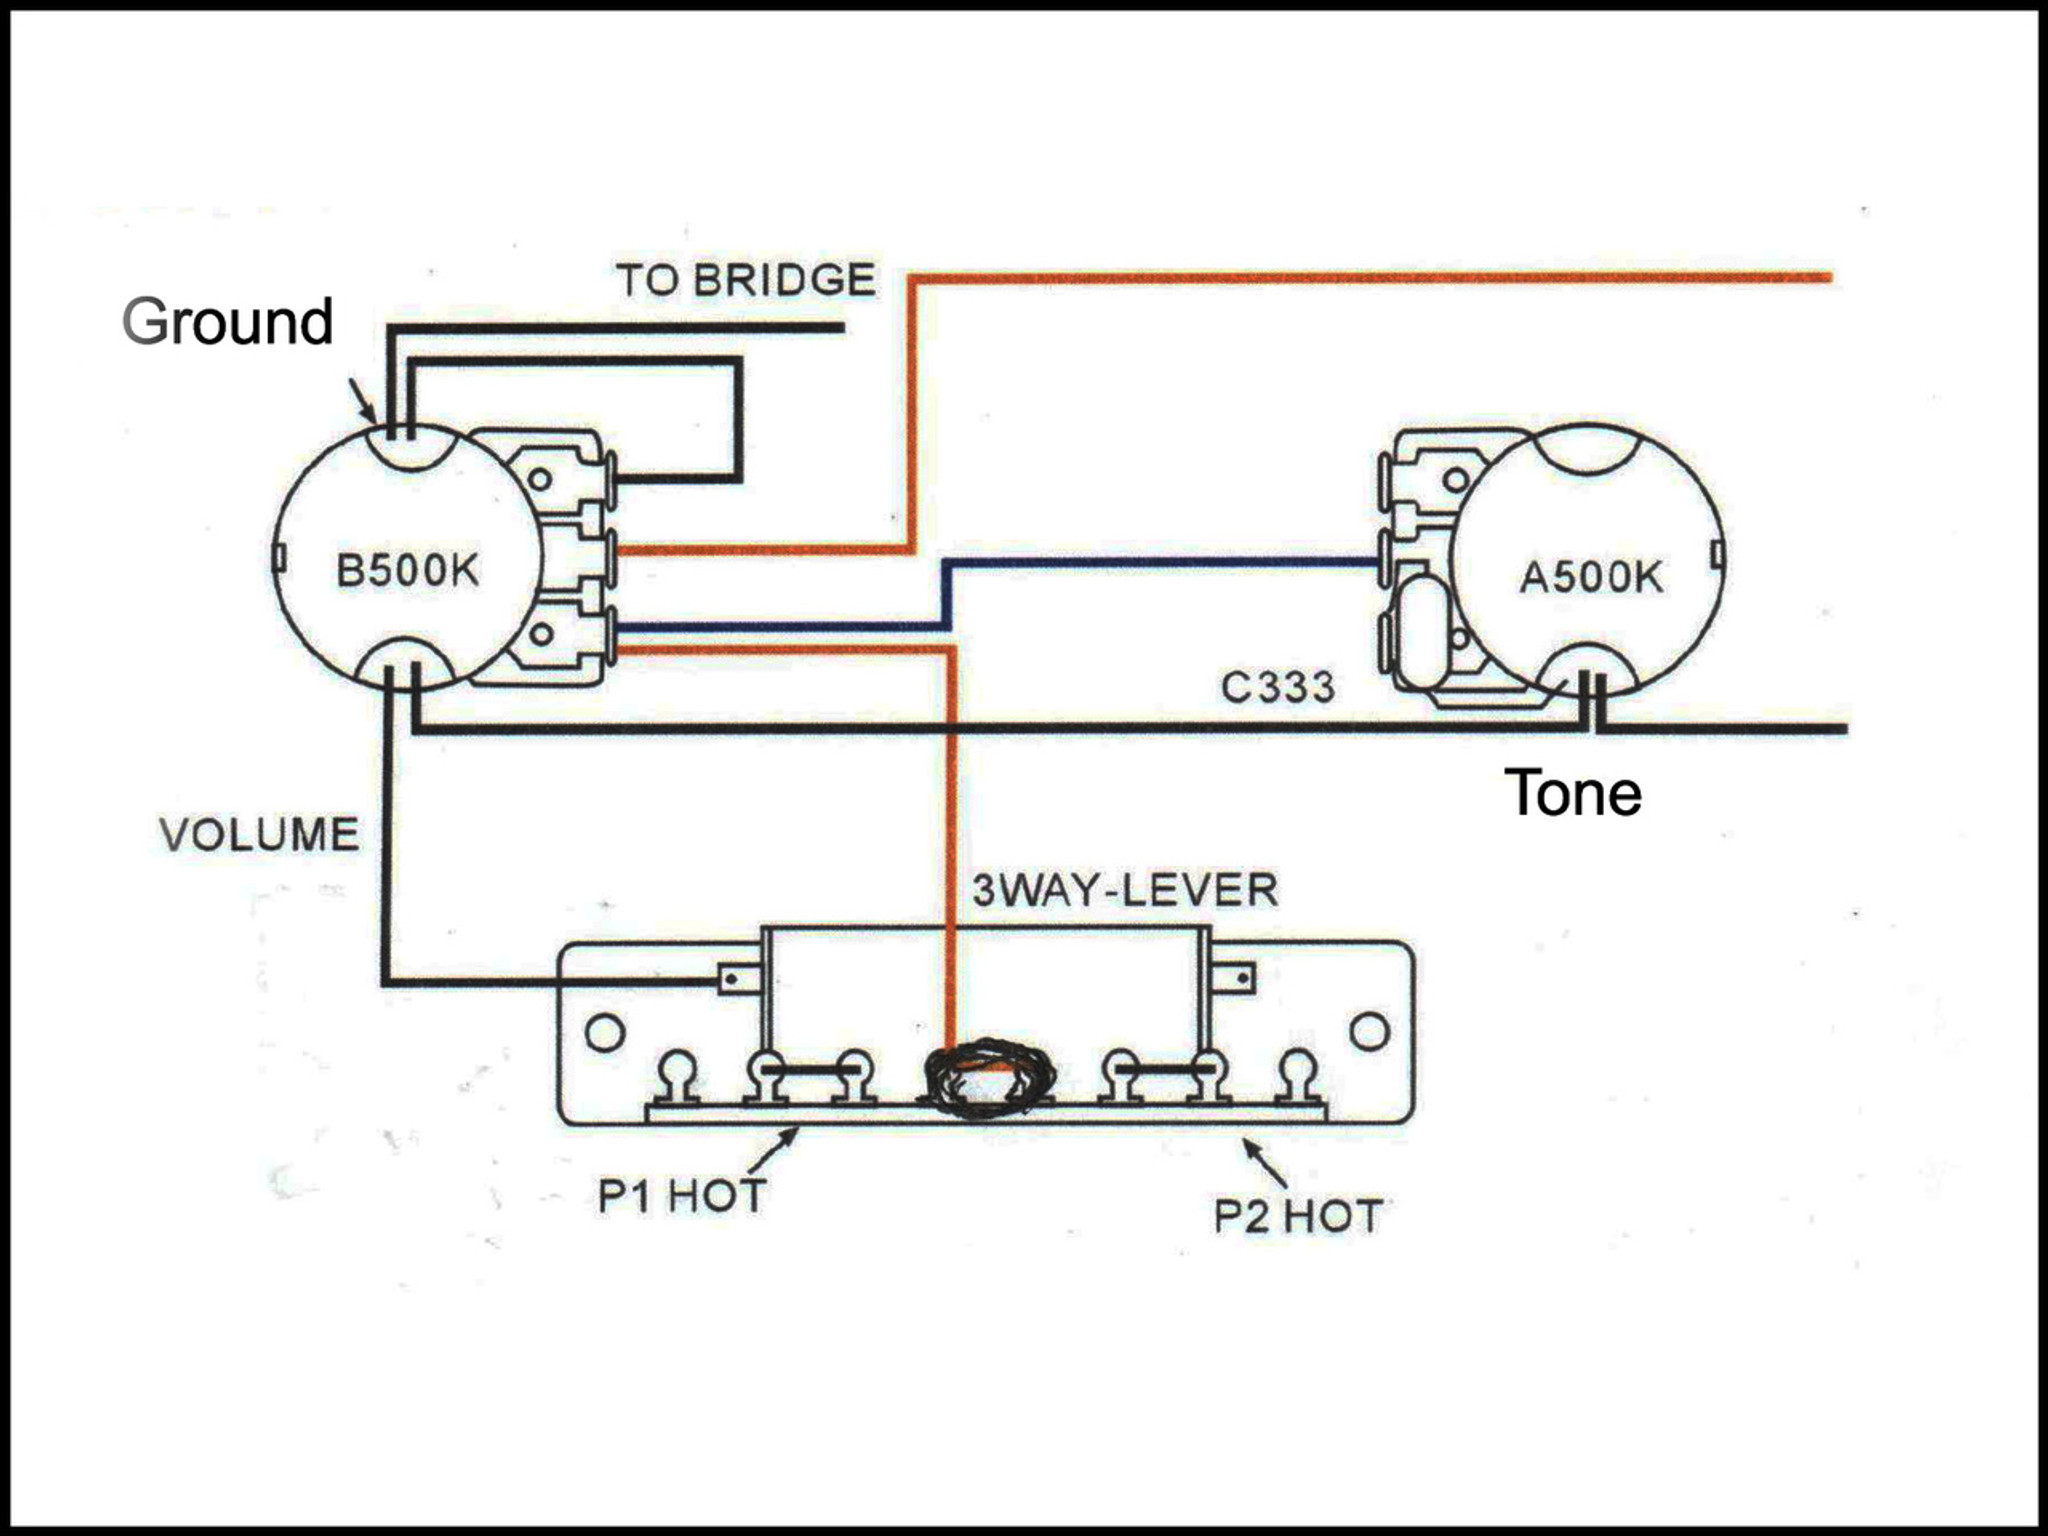 3 Way Lever Switch Guitar Wiring Hsh Diagram In Addition Gibson Les Paul Likewise Schematic Than Is Typical Of Or Epiphone Guitars This If For A Used Fender Jazz High Quality Chrome Vintage 5